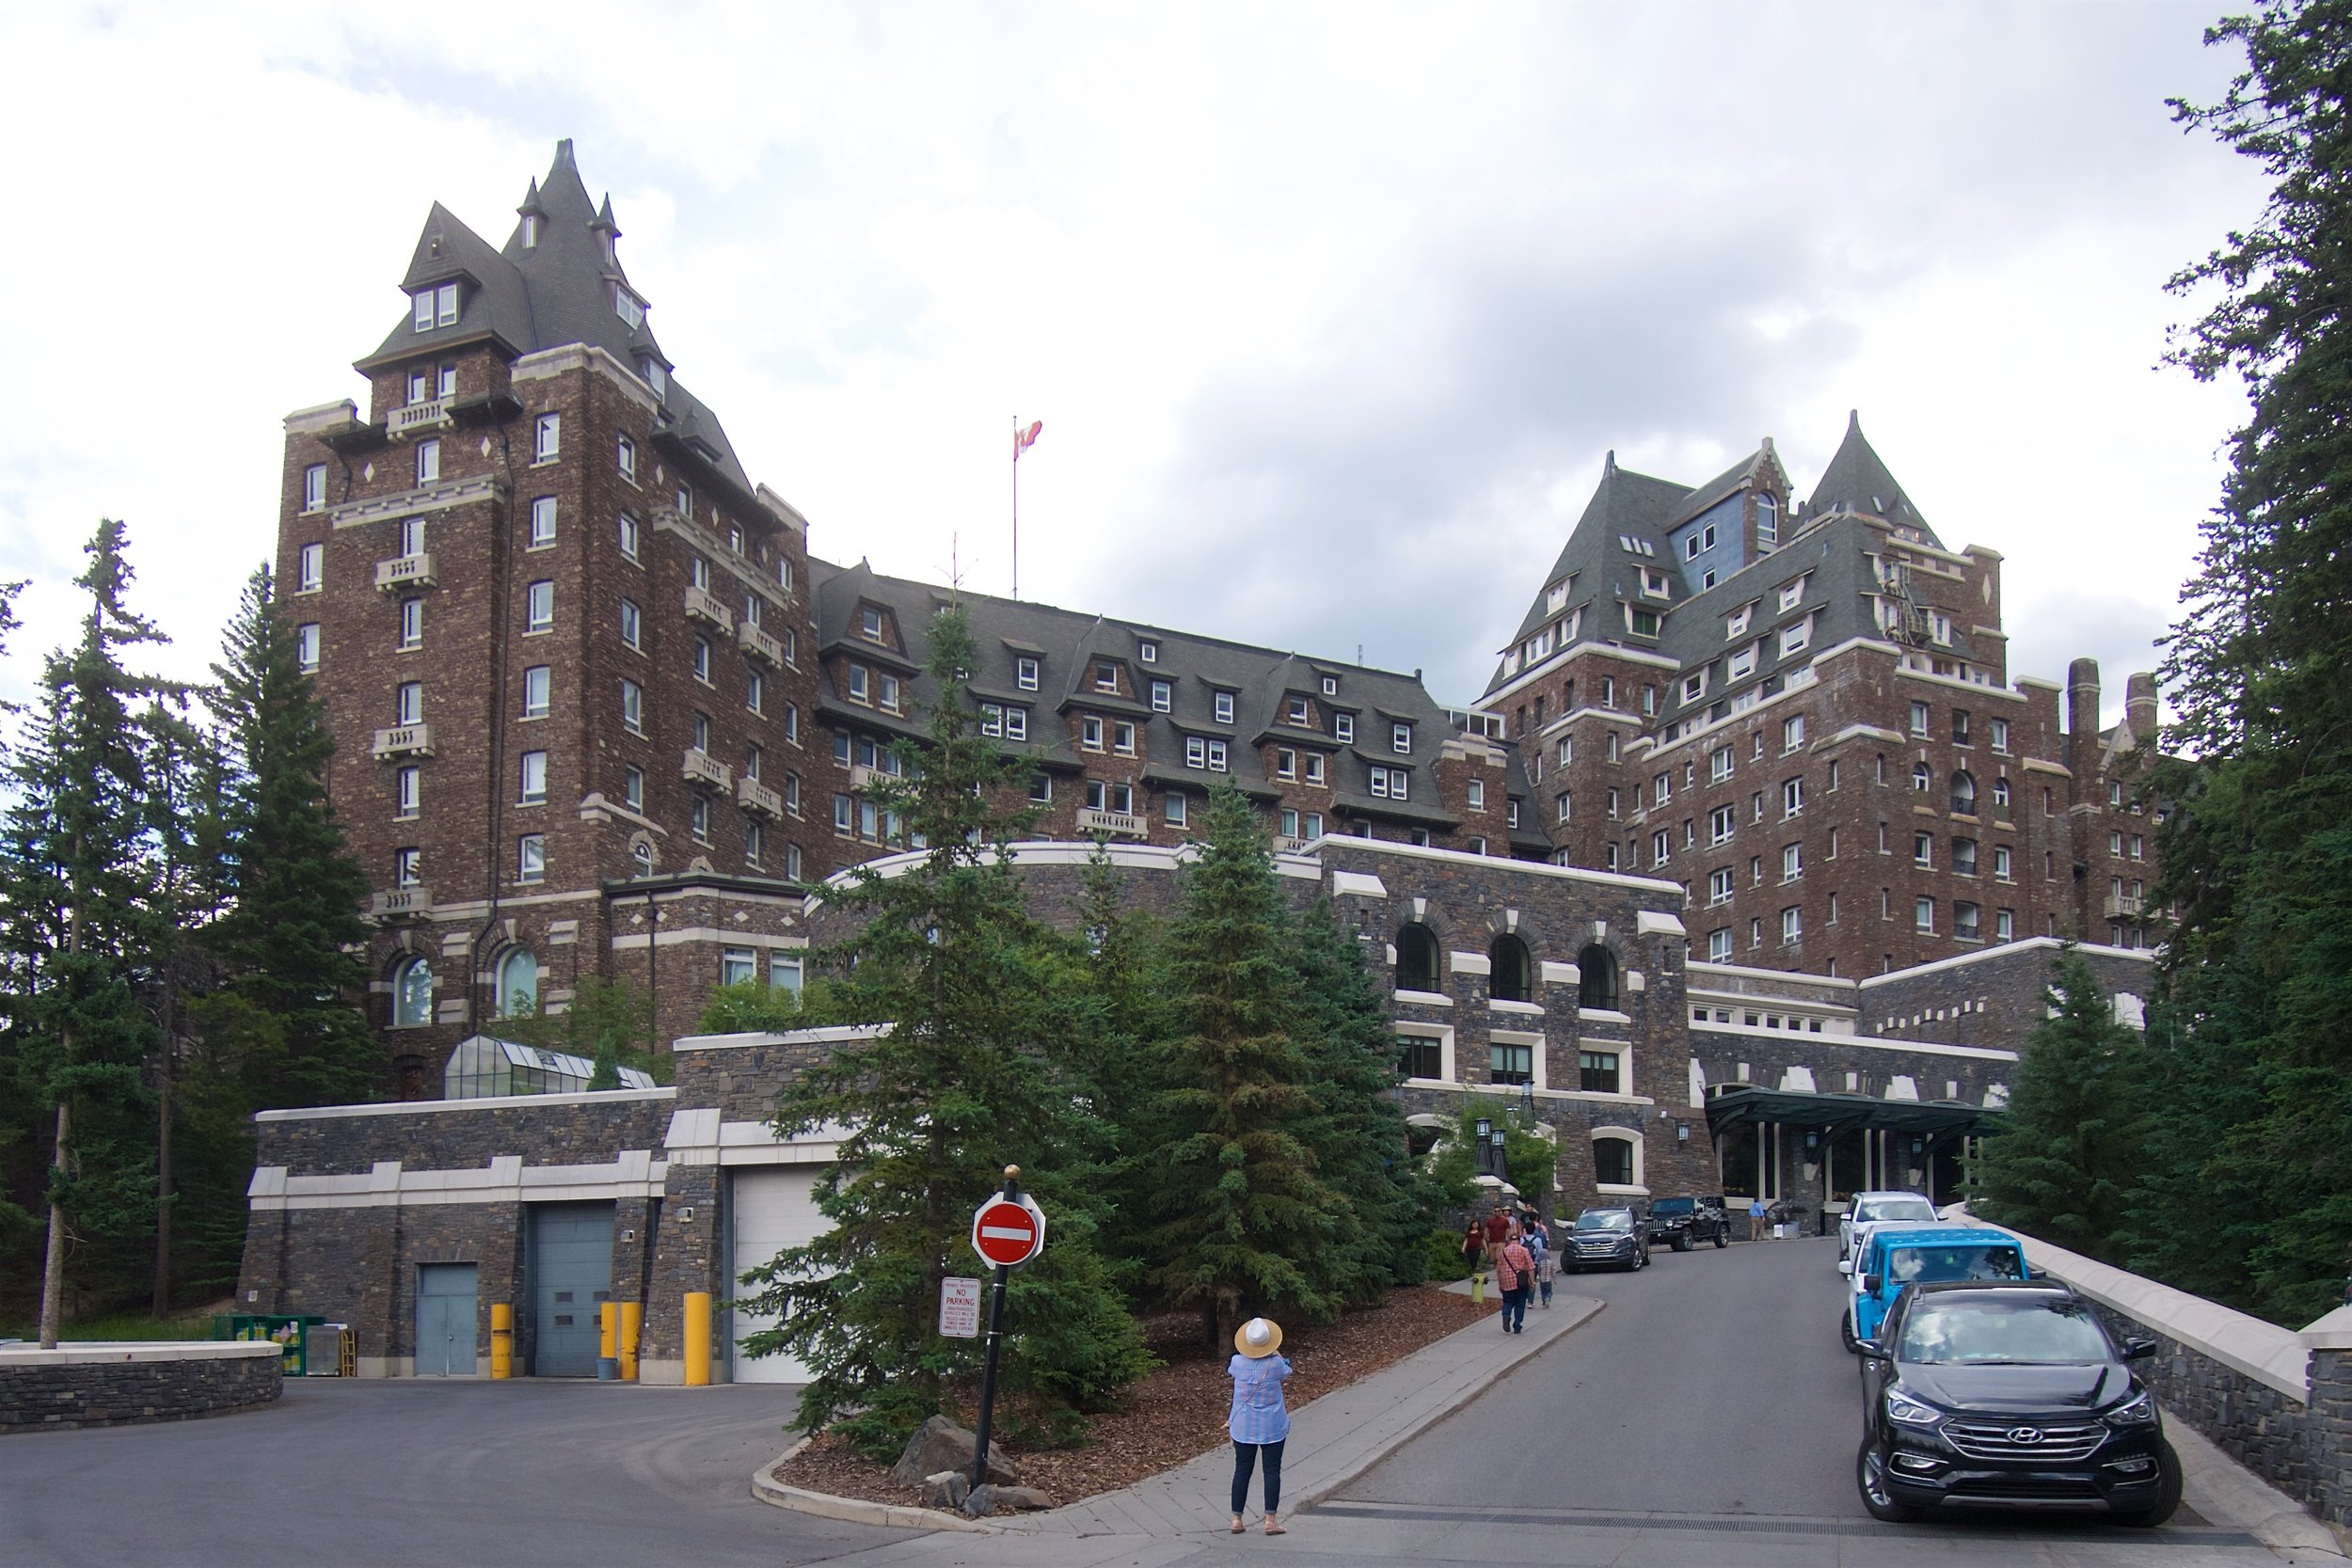 Exterior of the Fairmont Banff Springs Hotel